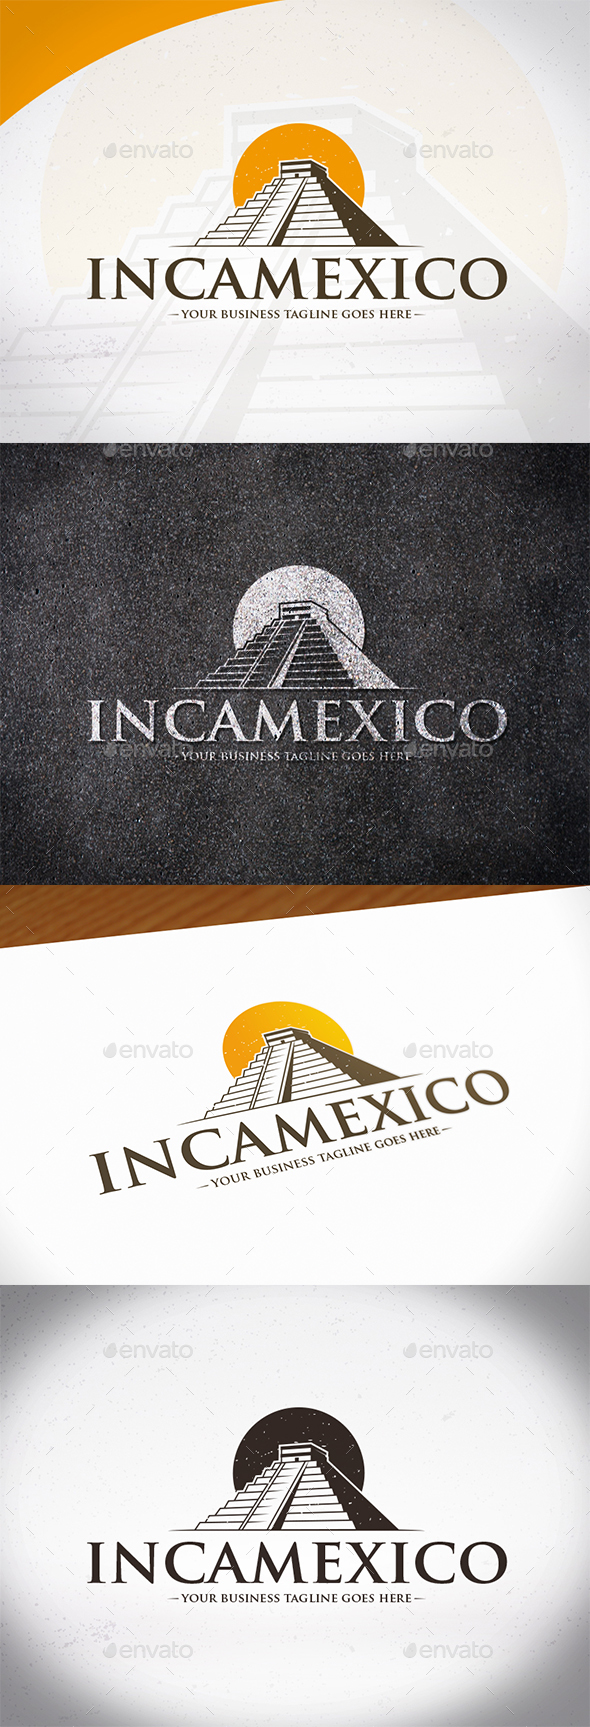 Inca Graphics, Designs & Templates from GraphicRiver